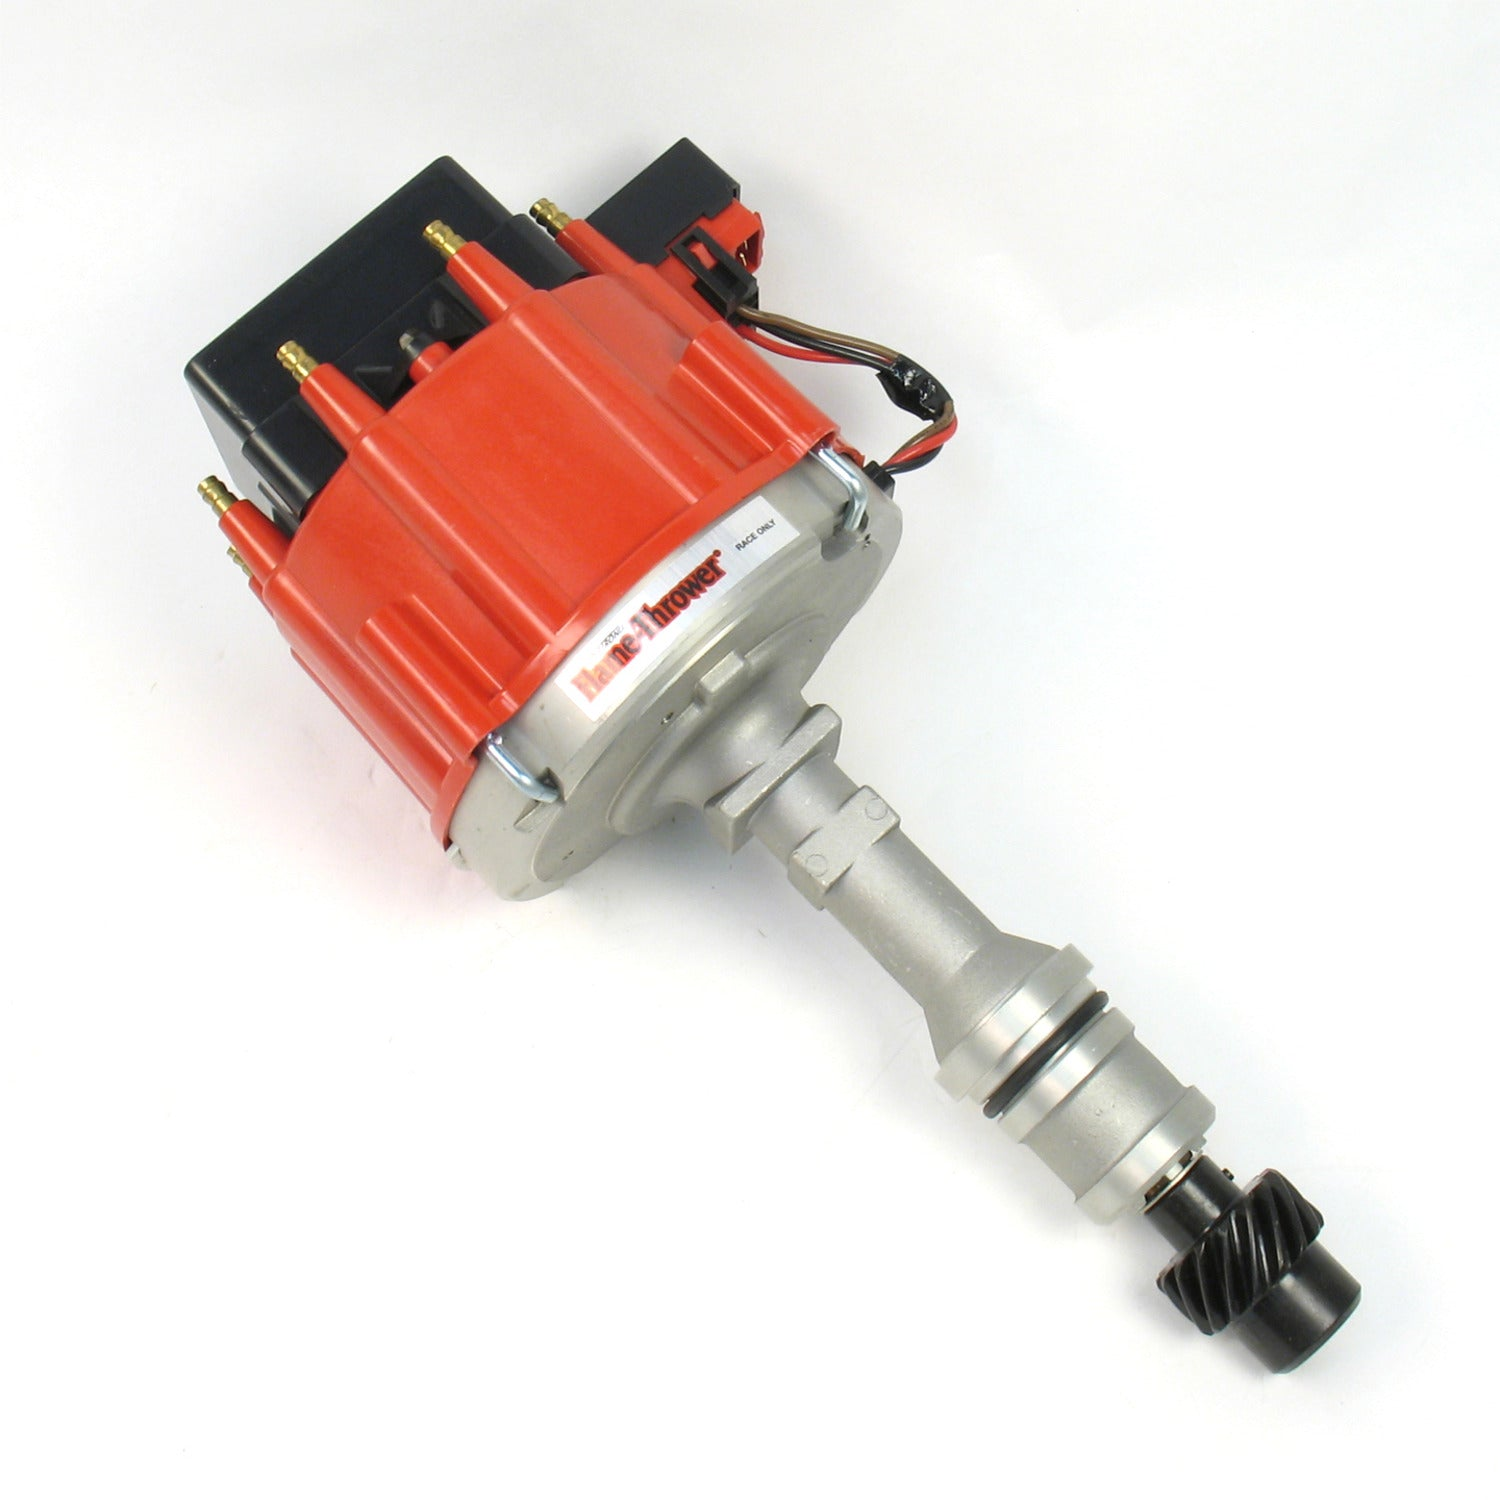 PerTronix D71171 Flame-Thrower Race Distributor HEI III Oldsmobile 260-455 Red Cap with multiple sparks and an adjustable digital rev limiter